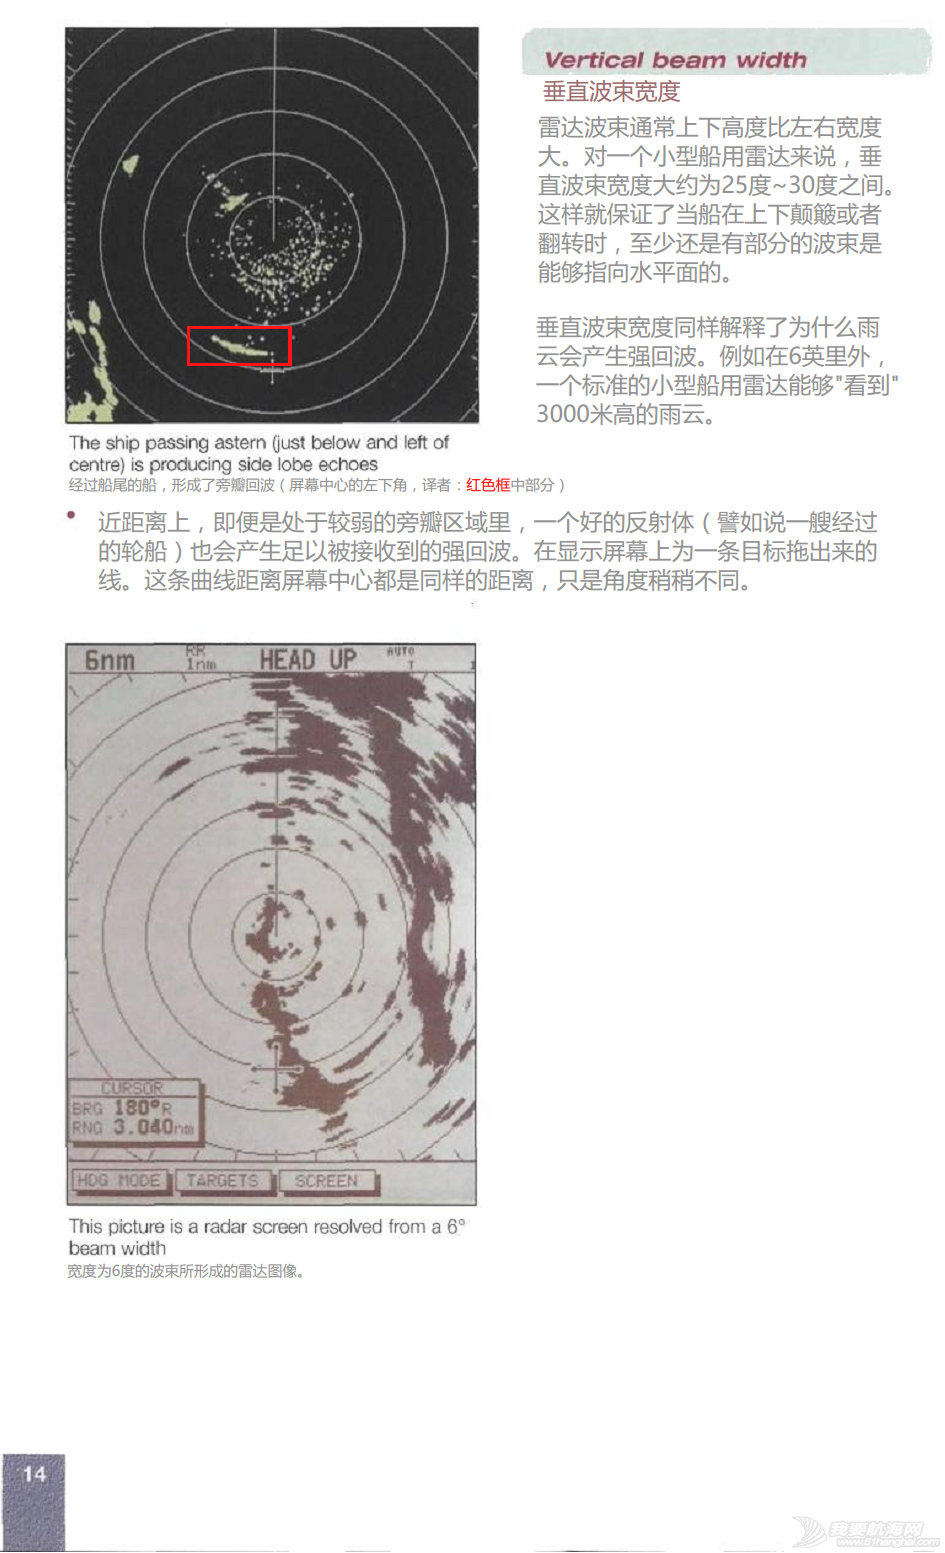 小伙伴,英文版,著作权,中文,帆船 ©RYA《雷达使用简介》An introduction to Radar.完稿 16